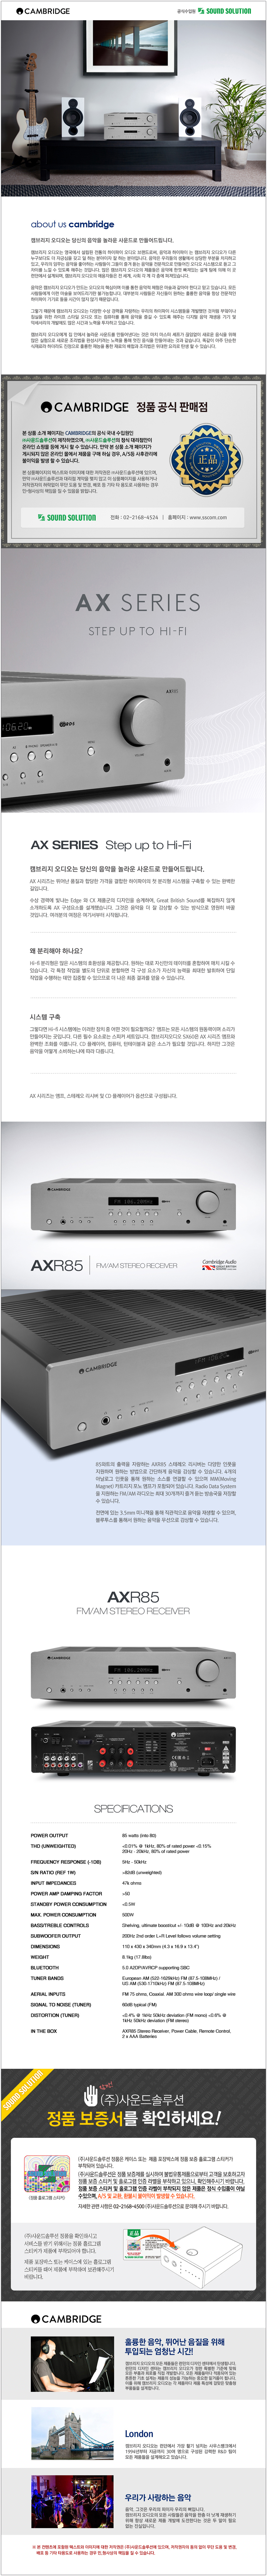 cambridge_audio_axr85_features.jpg